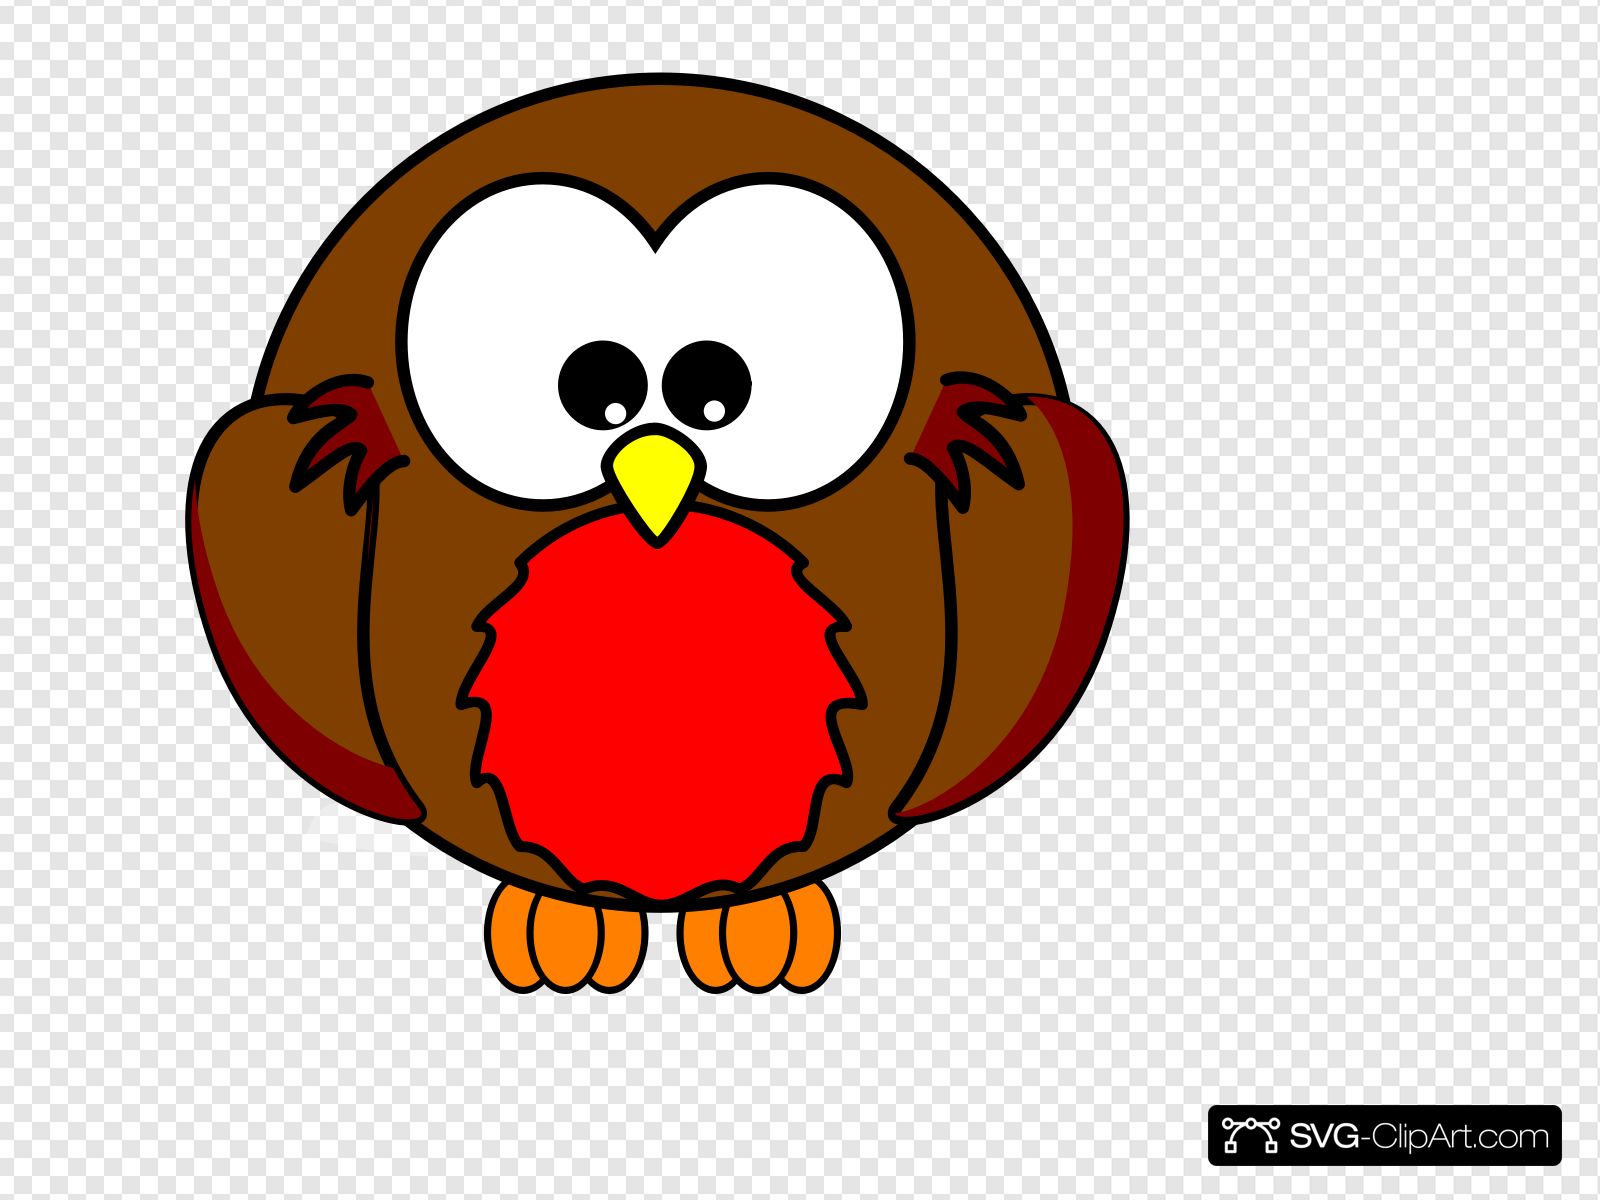 Robin Looking Down Cartoon Clip art, Icon and SVG.